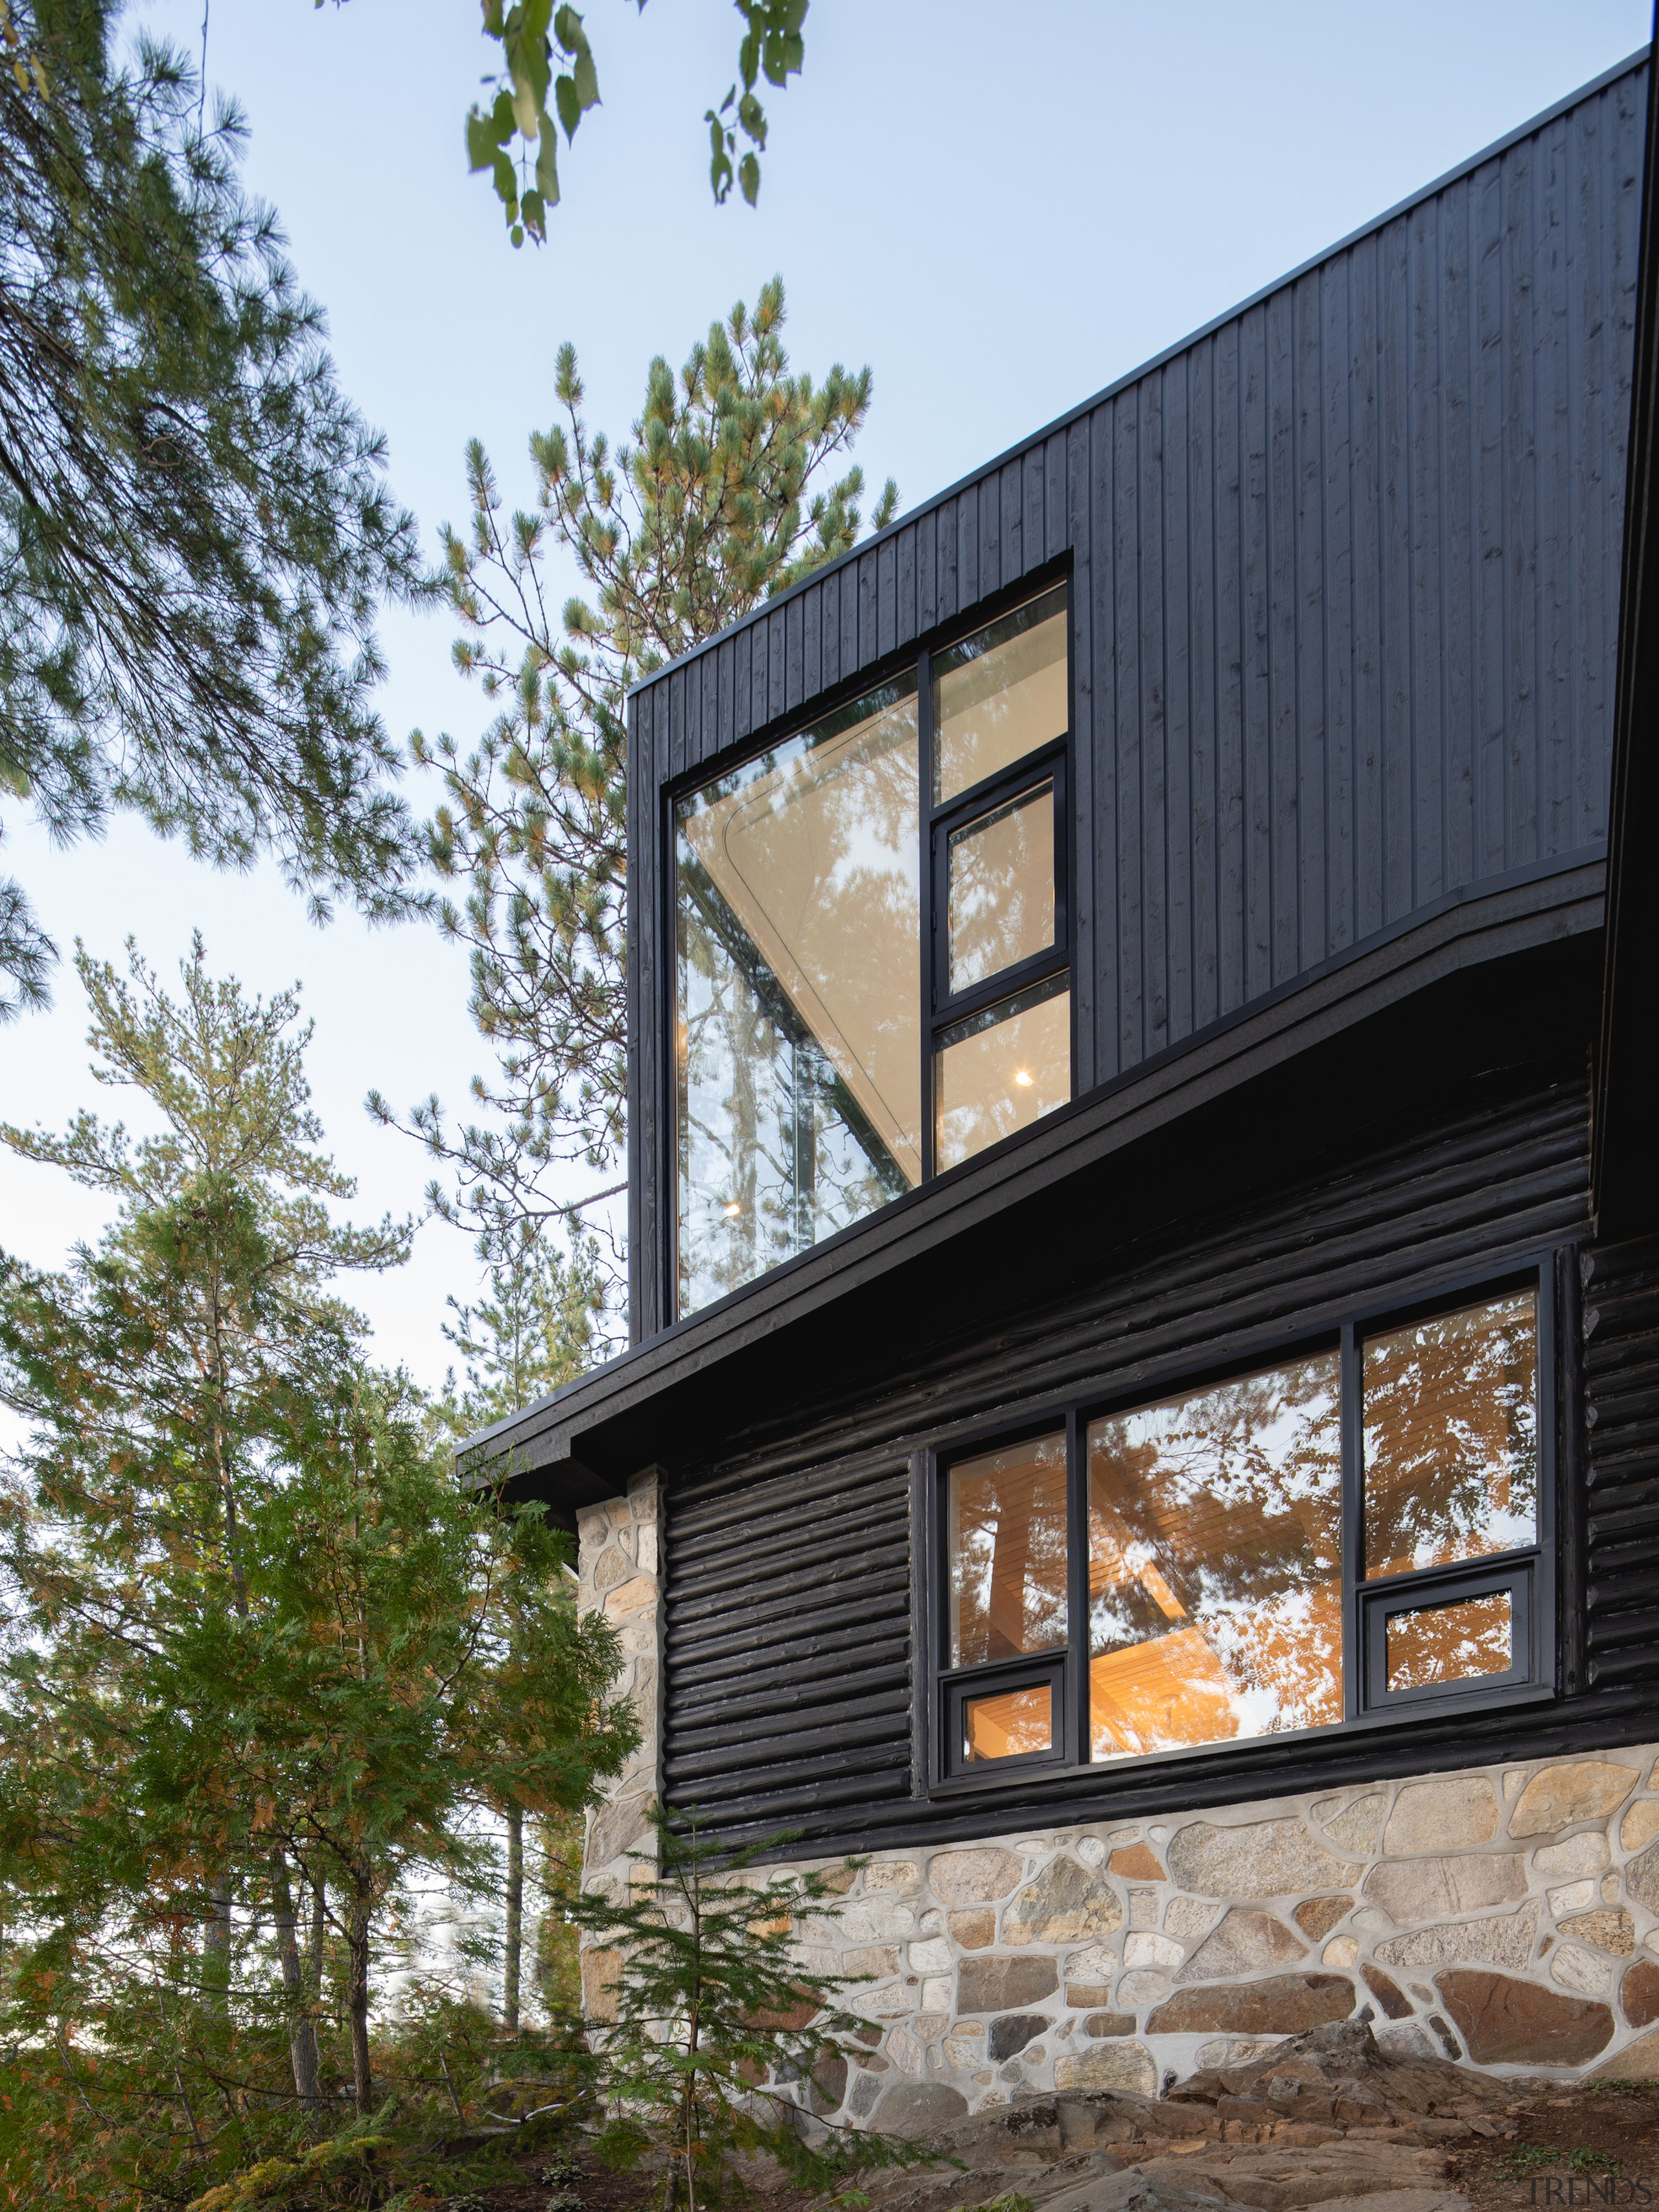 The extension's dramatic black cladding contrasts and complements